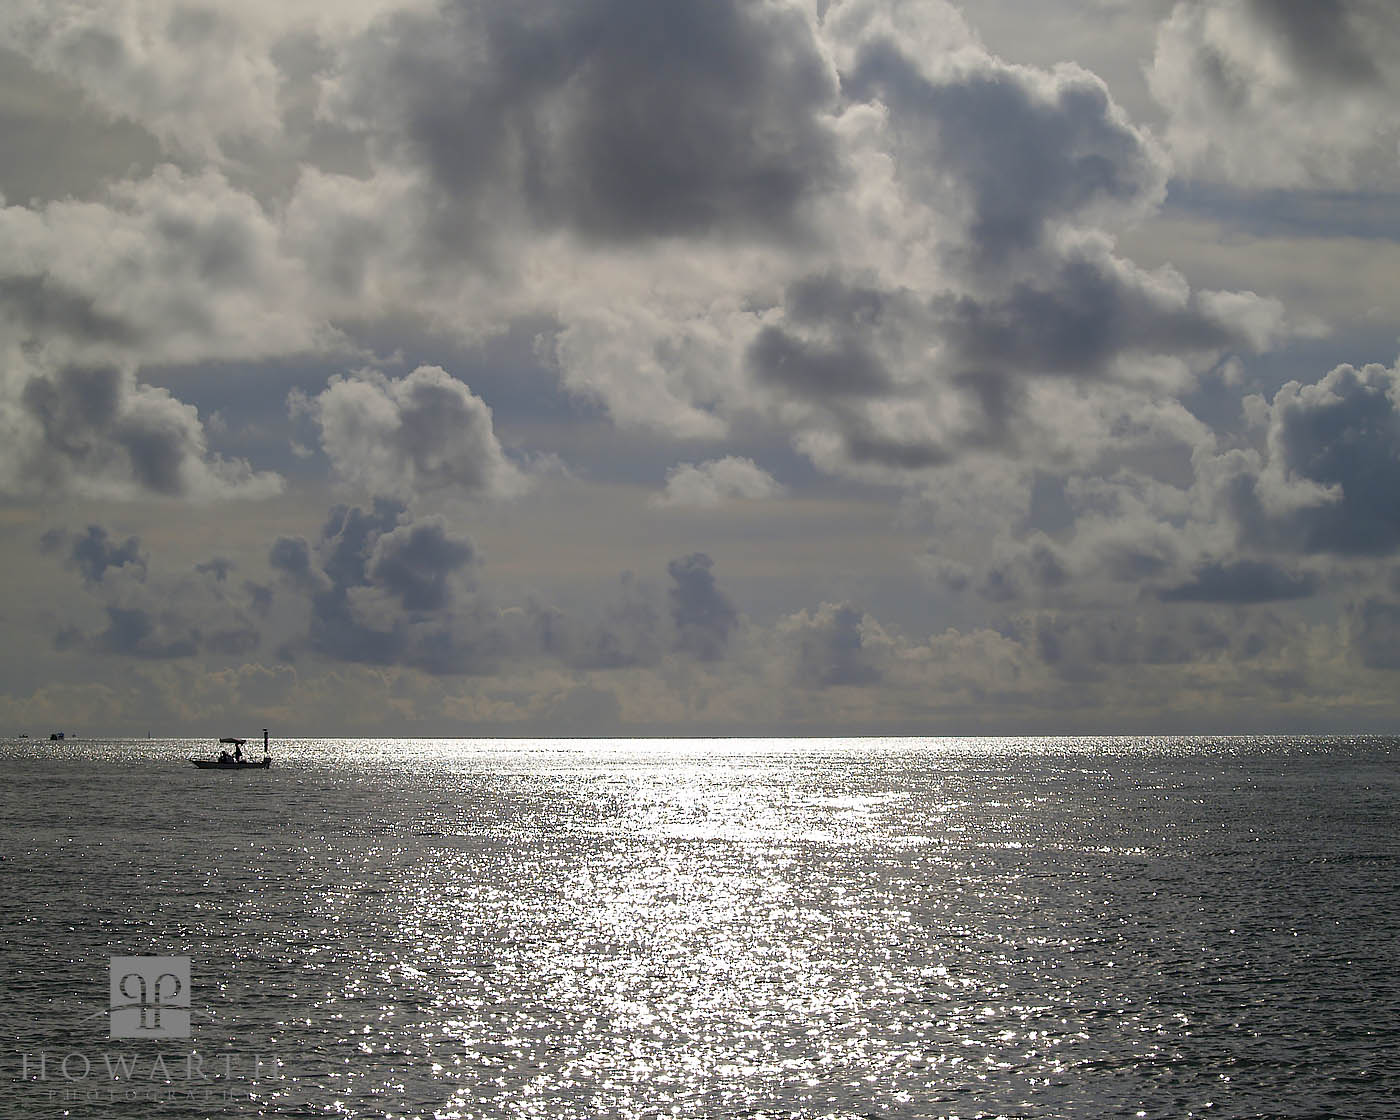 silver, scene, bright, sun, shimmer, west, end, somerset, offshore, photo